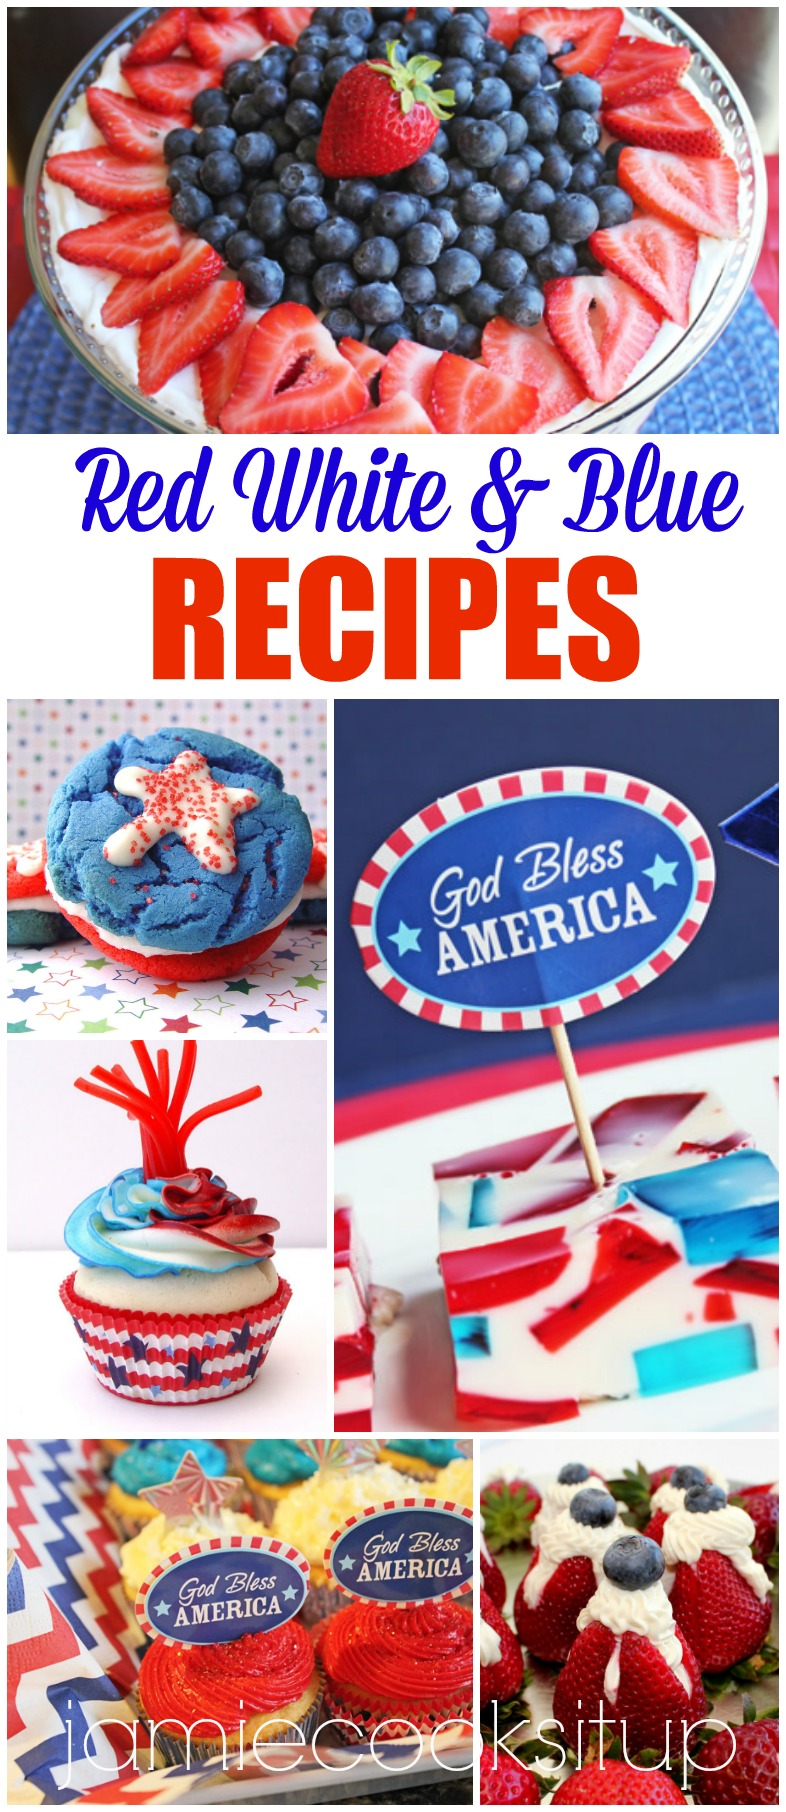 Red White and Blue Recipes for the Fourth of July!